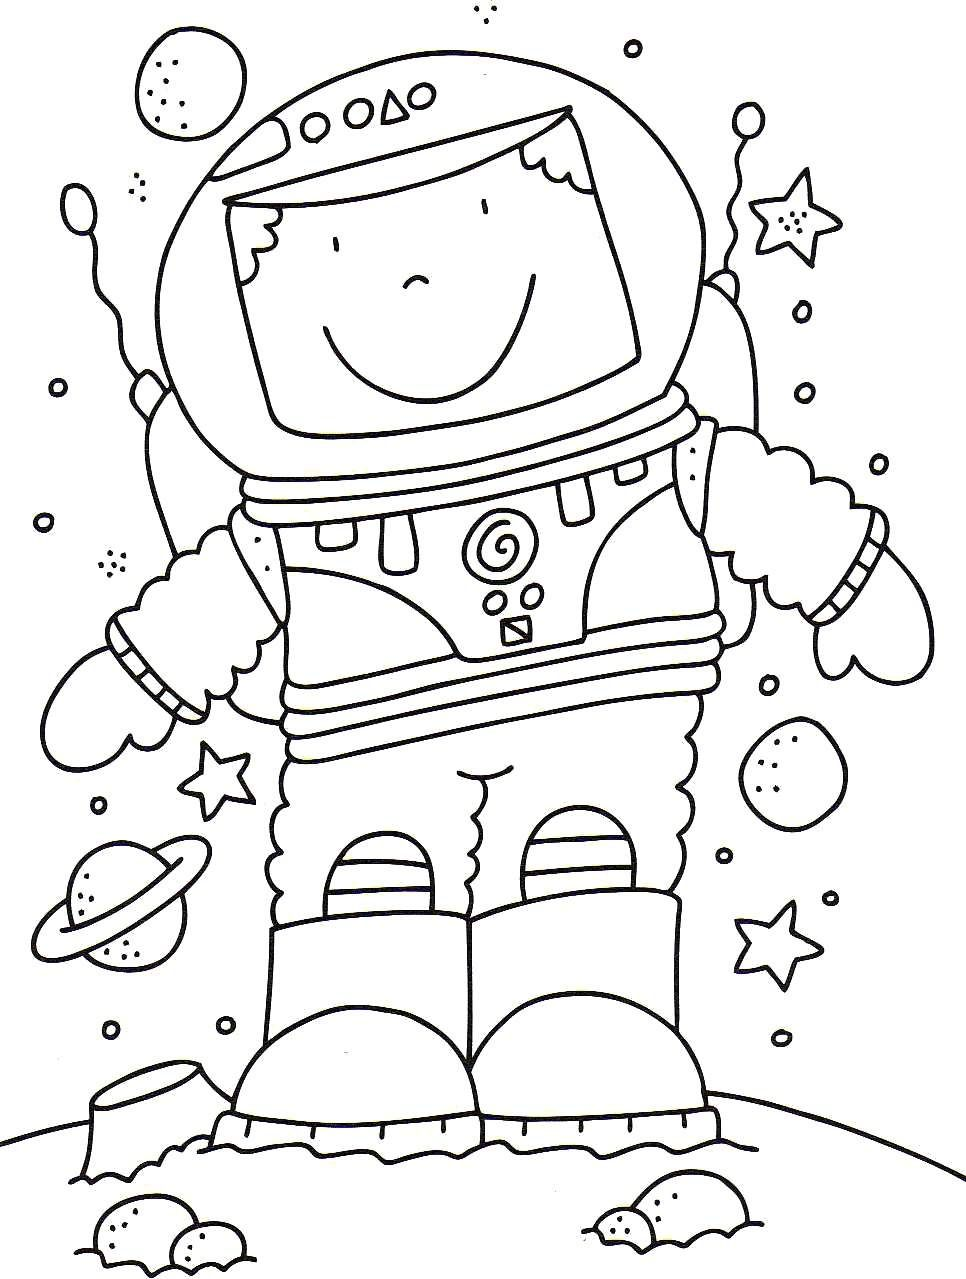 Astronaut clipart coloring realistic picture transparent astronaut coloring pages - Google Search | Space | Space coloring ... picture transparent